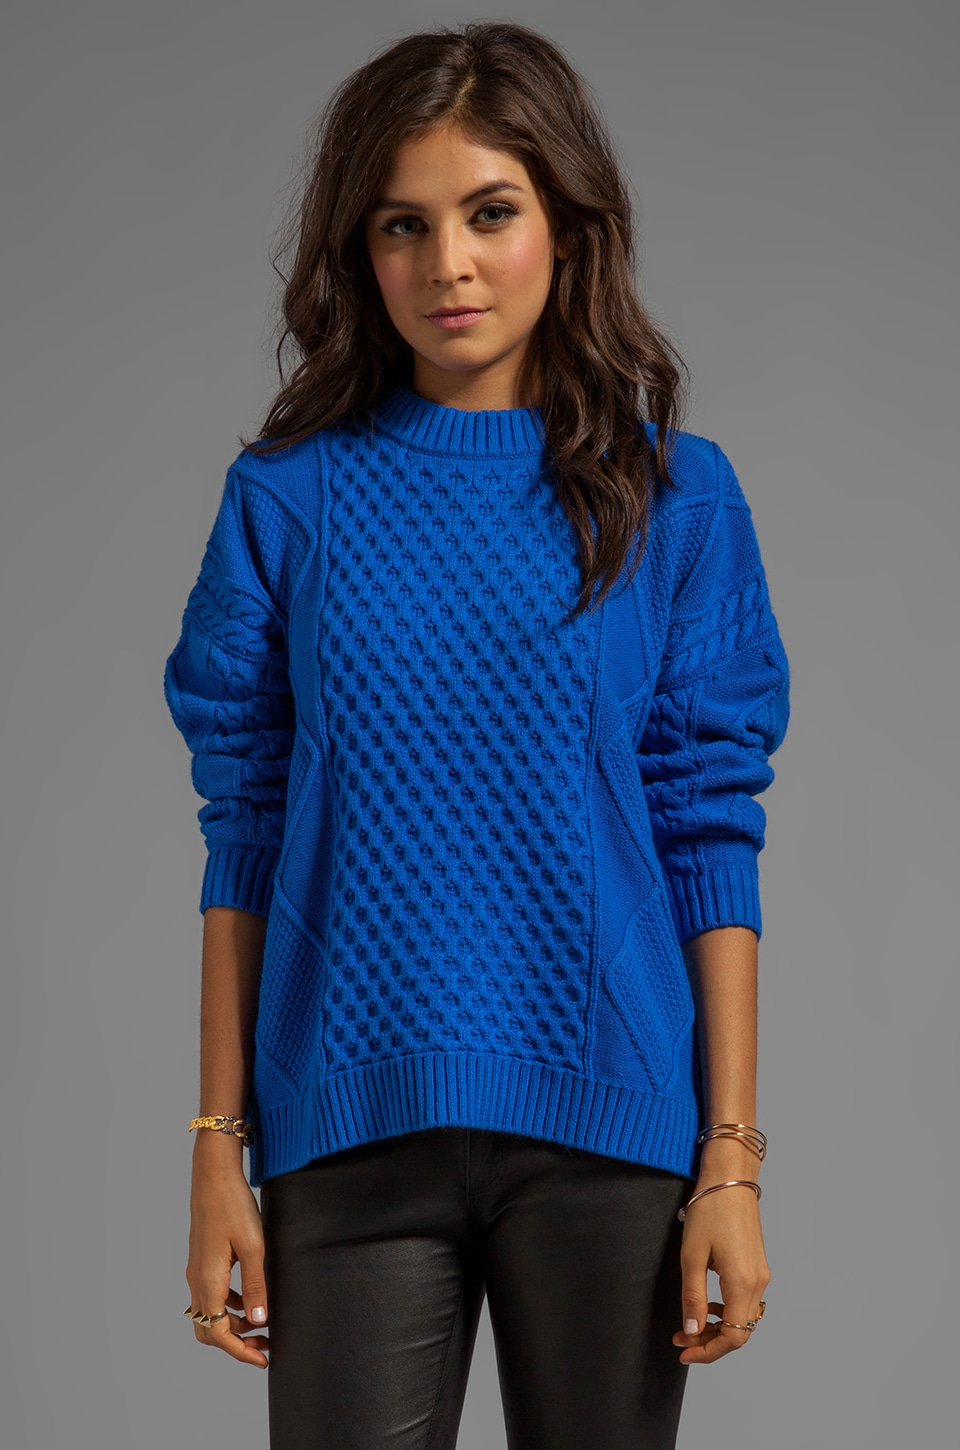 Central Park West Caribou Oversized Pullover in Cobalt